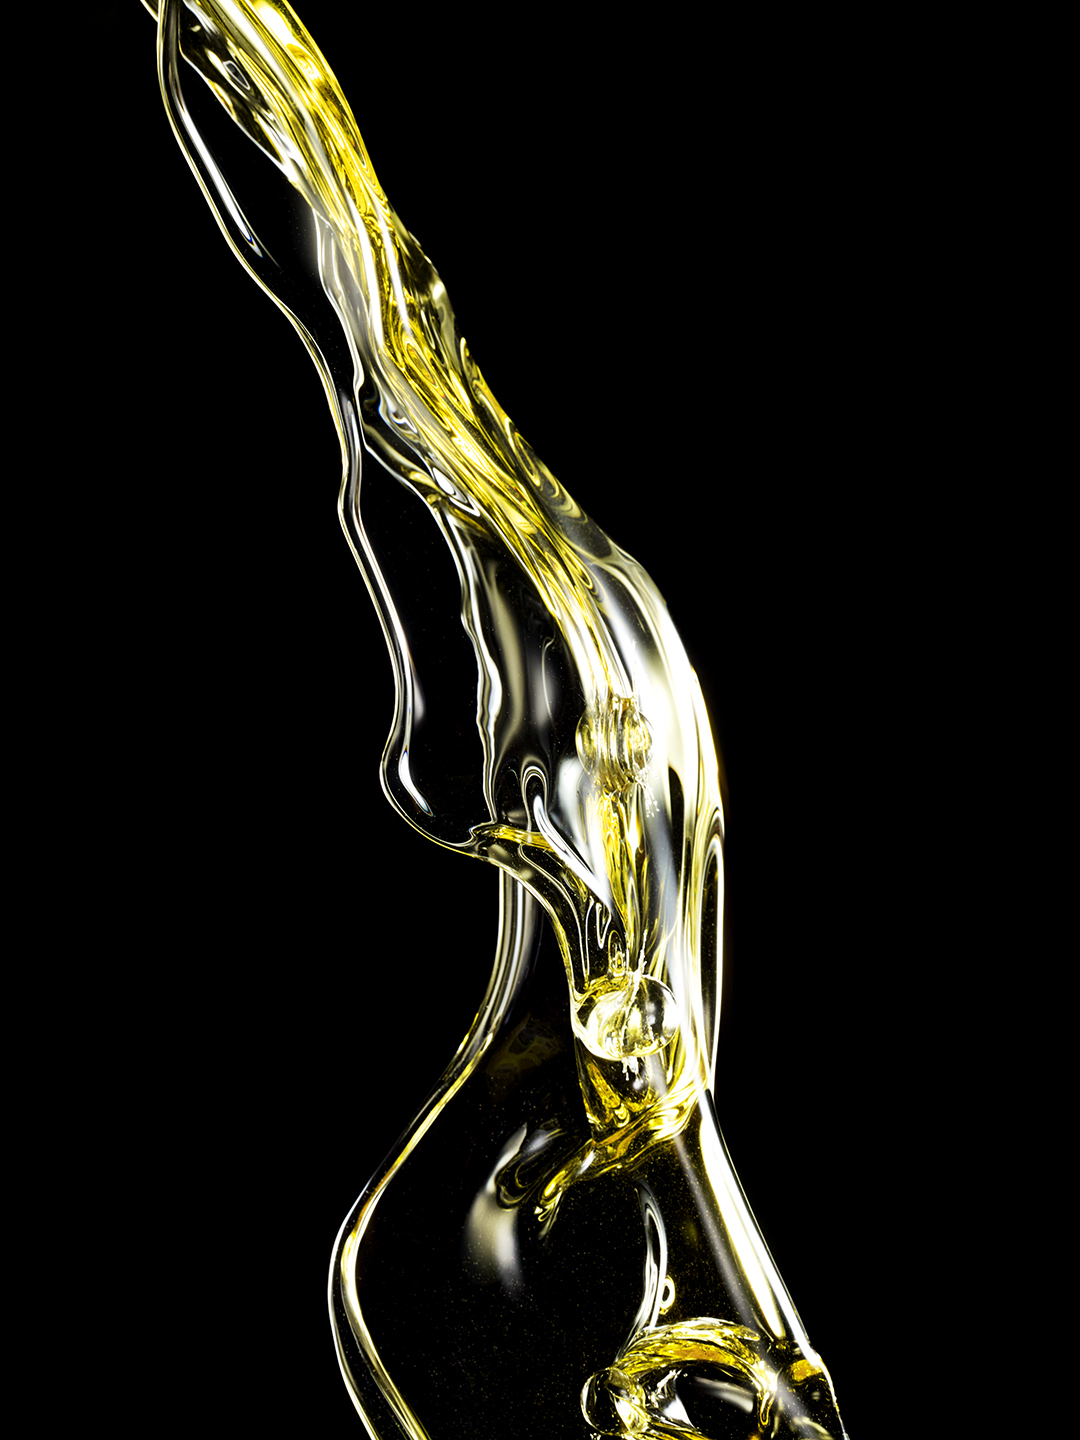 PROPRIETARY YELLOW LIQUID SHOT IN MID AIR CREATING ABSTRACT SHAPES SHOT BY DAVID FILIBERTI